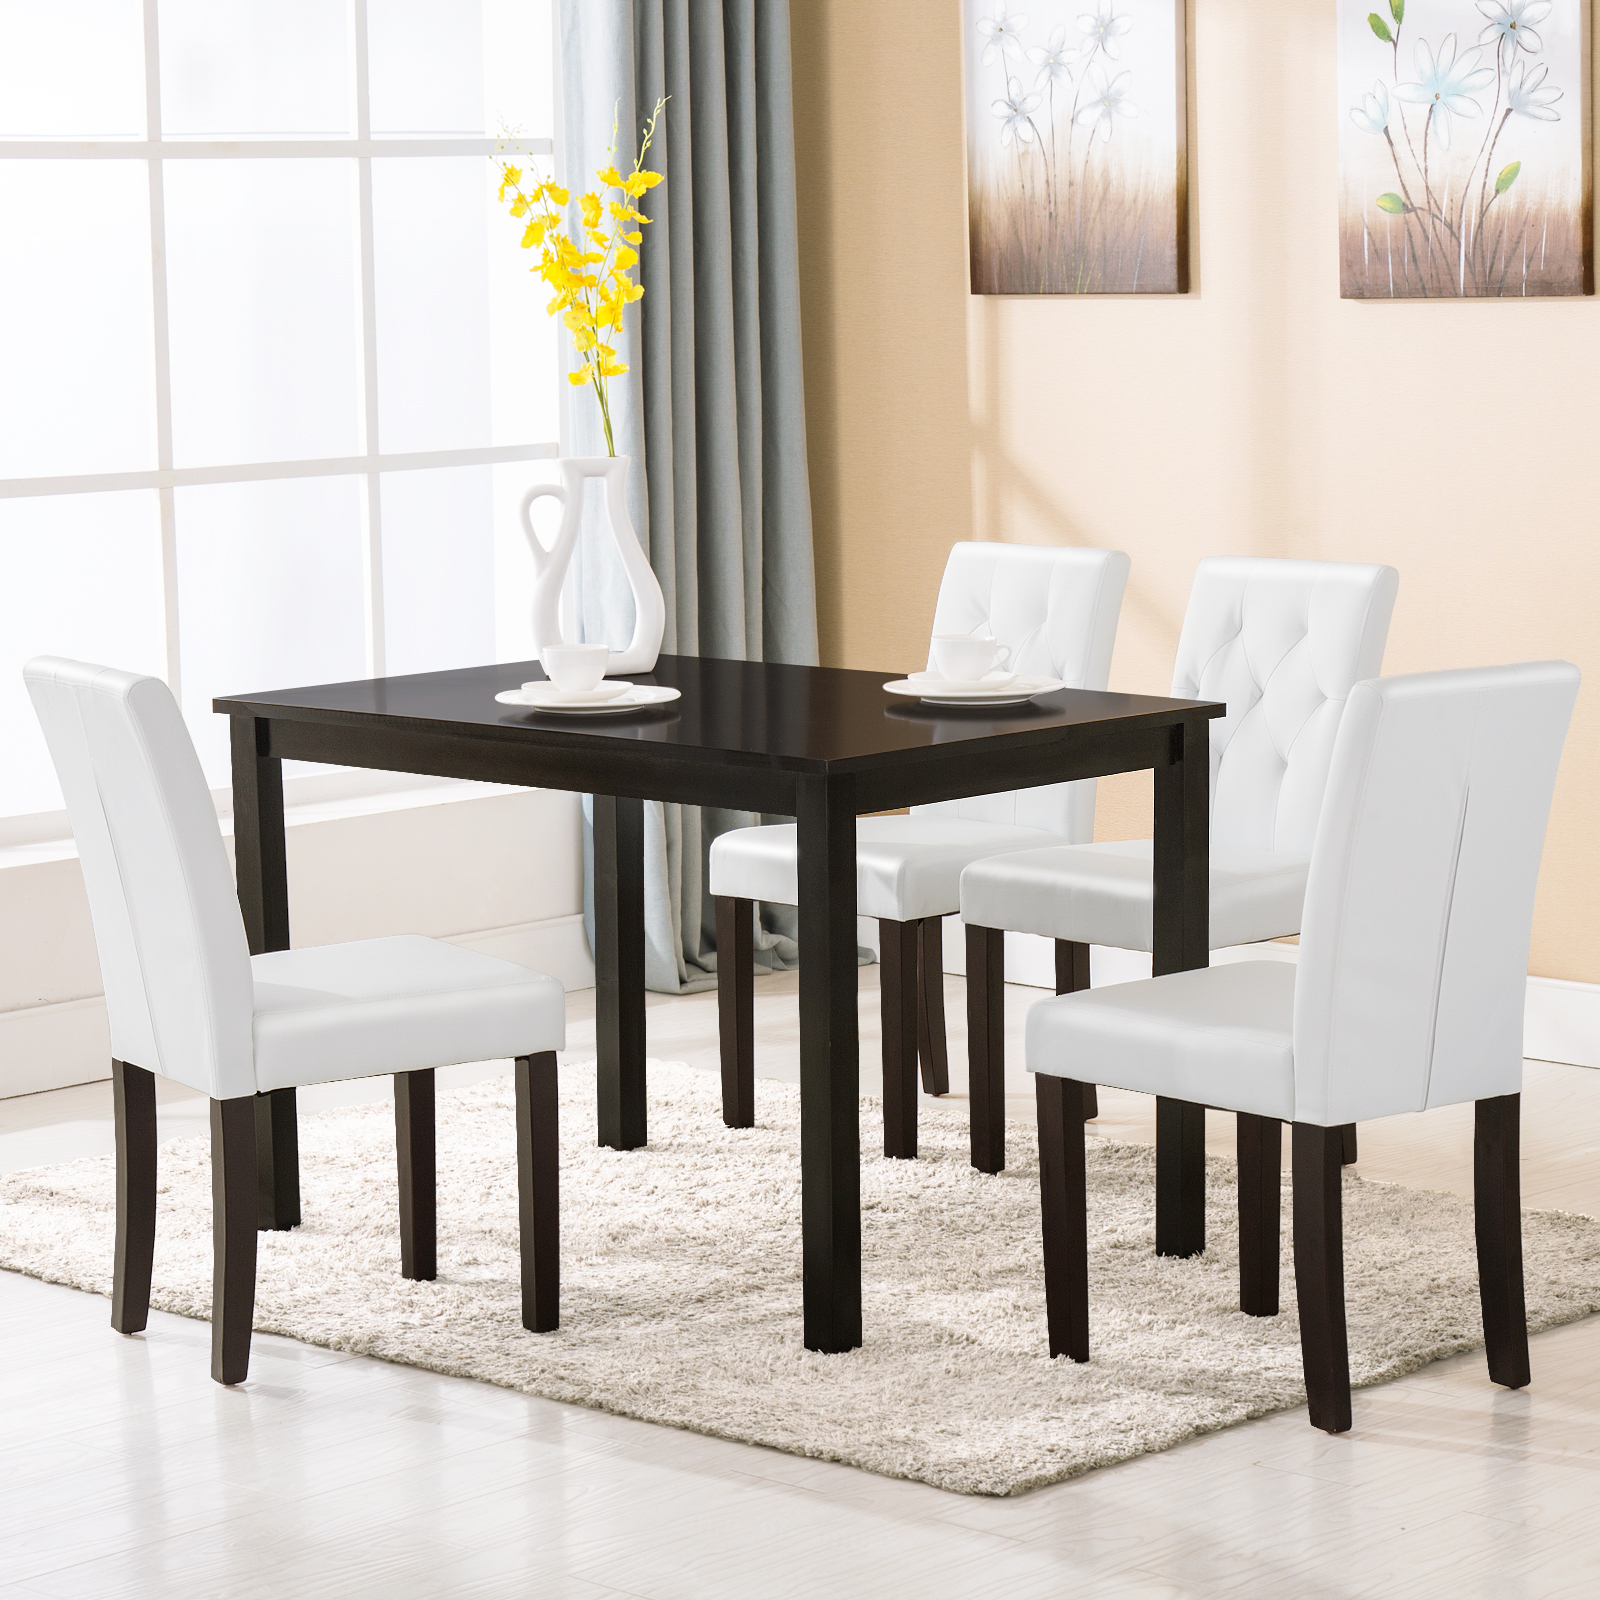 Ebay Furniture Dining Room: 5 Piece Wood White Dining Table Set 4 Chairs Room Kitchen